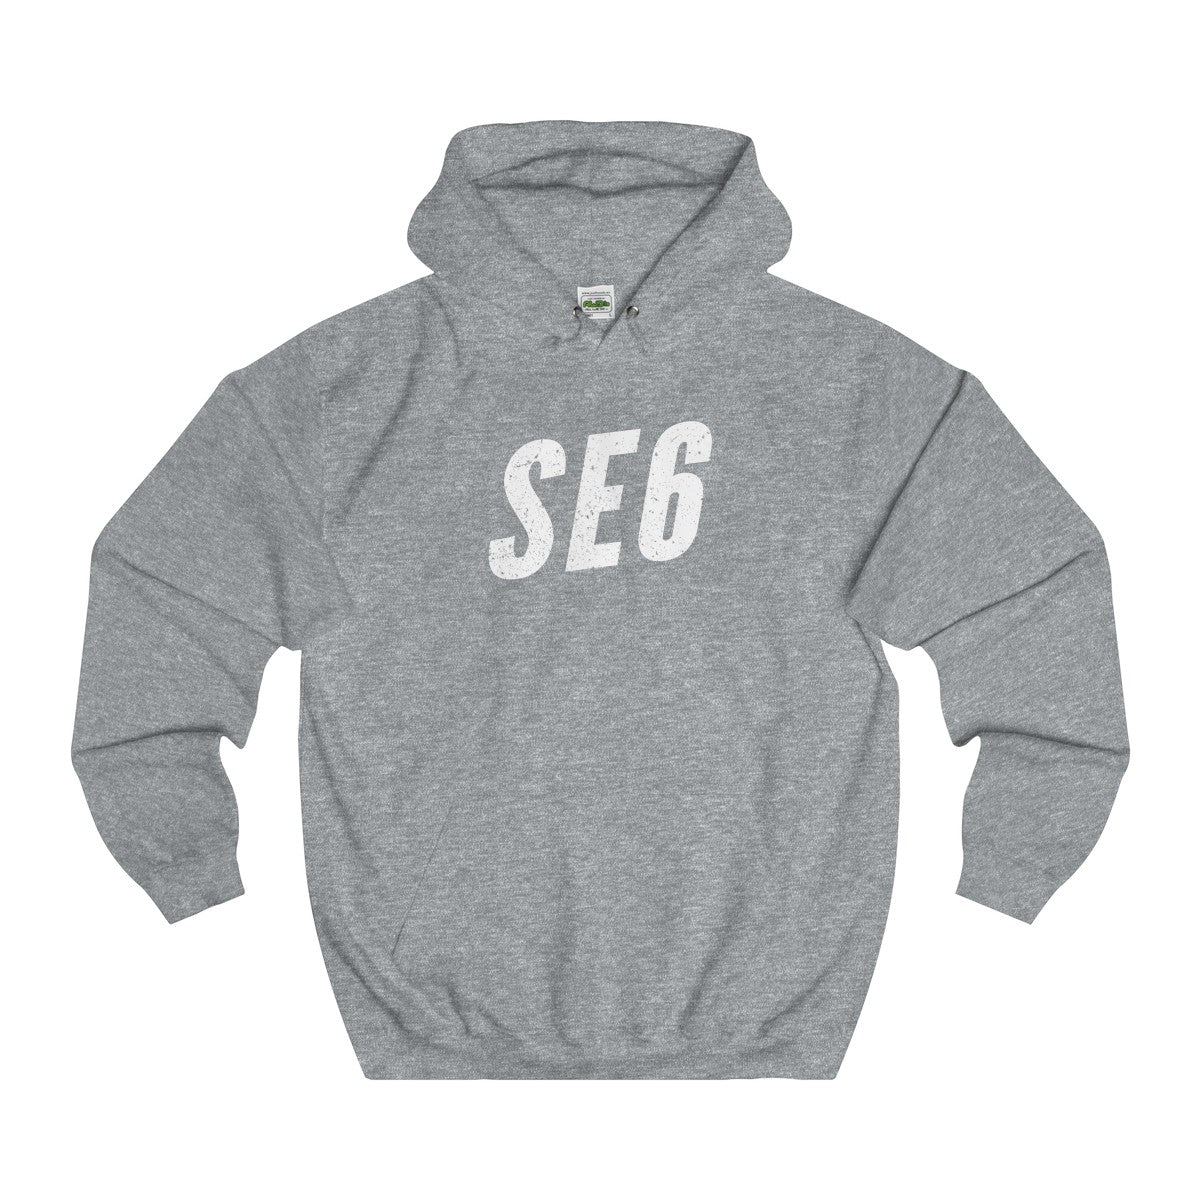 Hither Green SE6 Hoodie